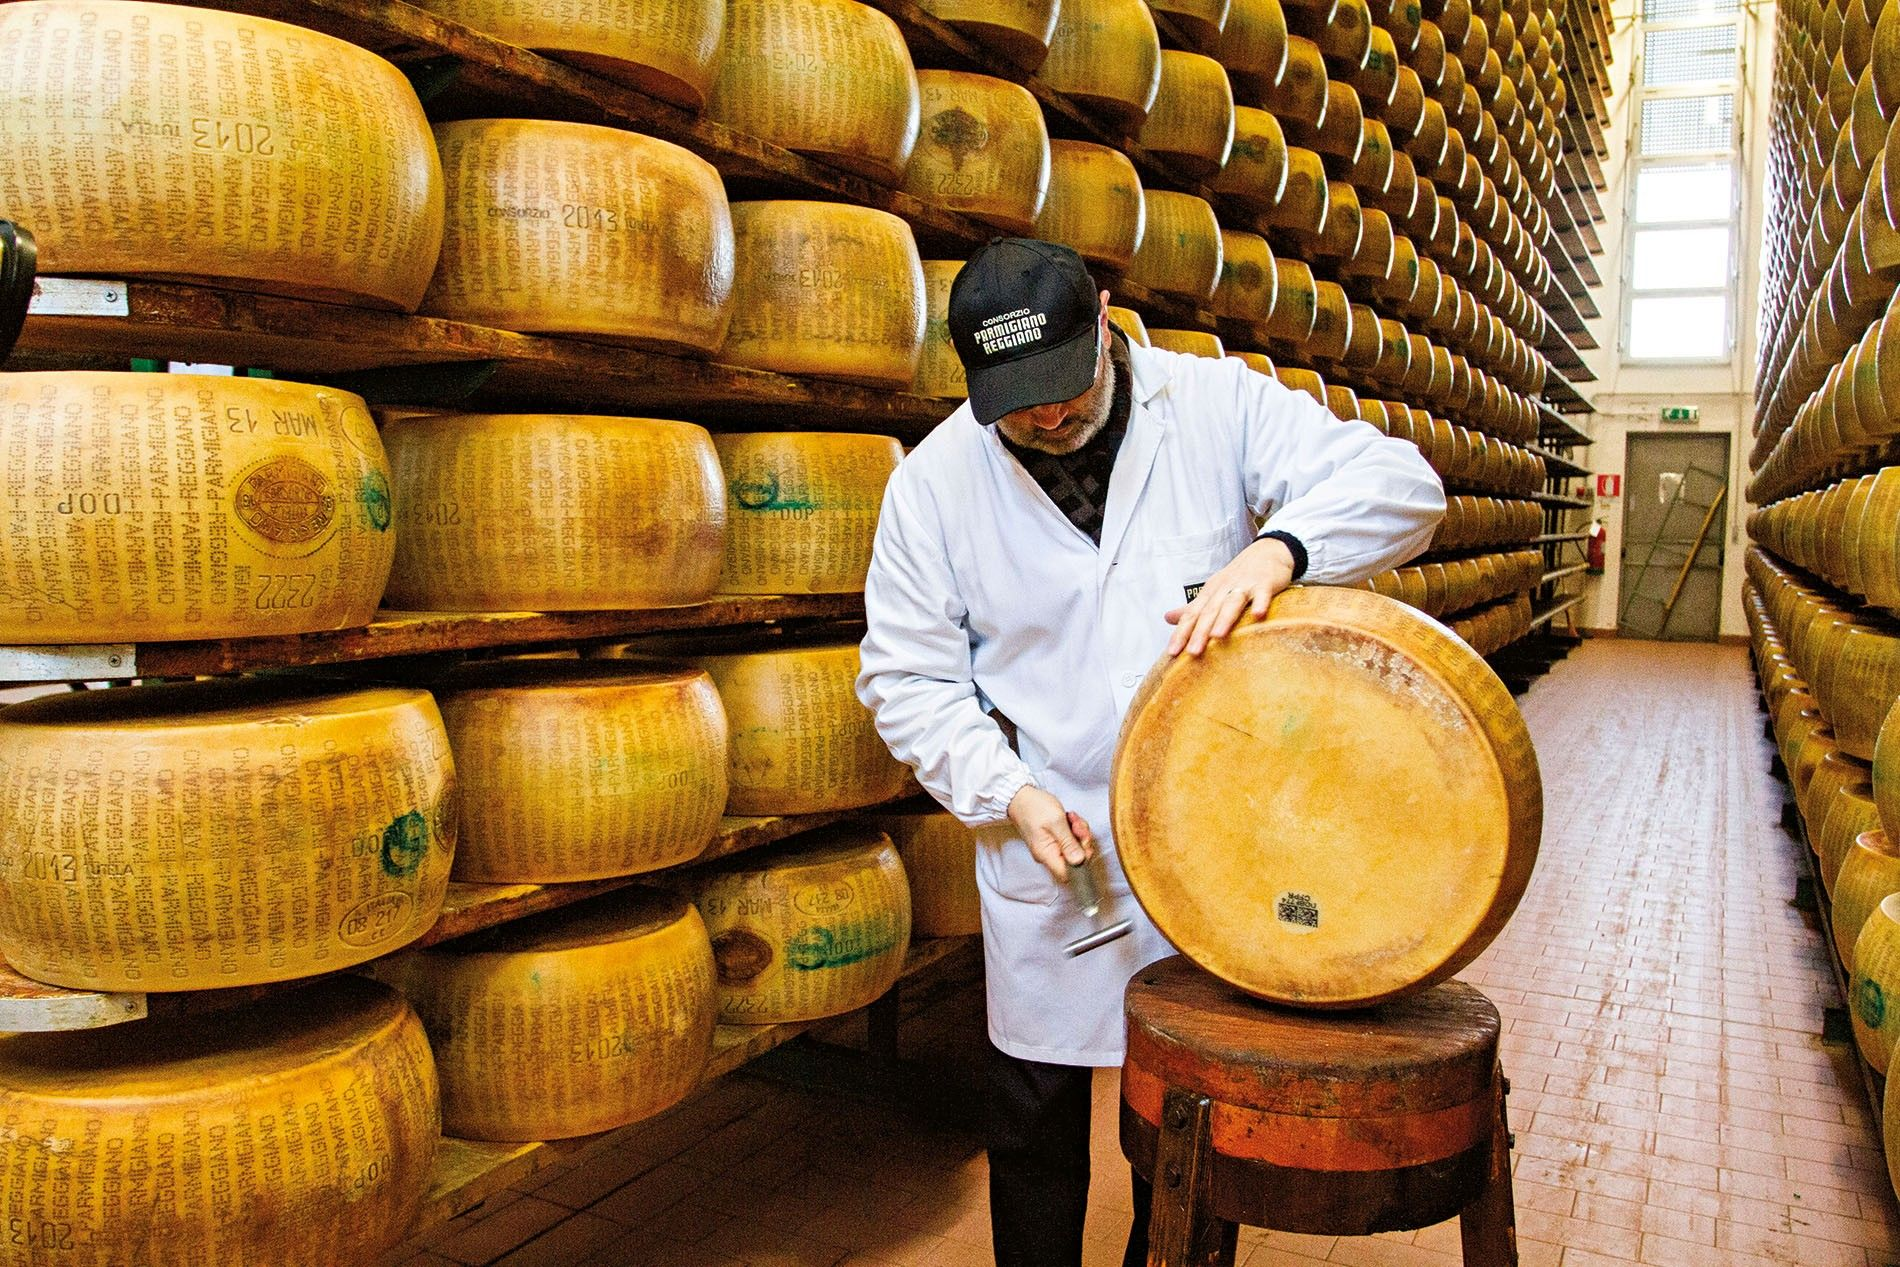 A master grader at Italy's Parmigiano-Reggiano Consortium tests the quality of a wheel of Parma's famed ...